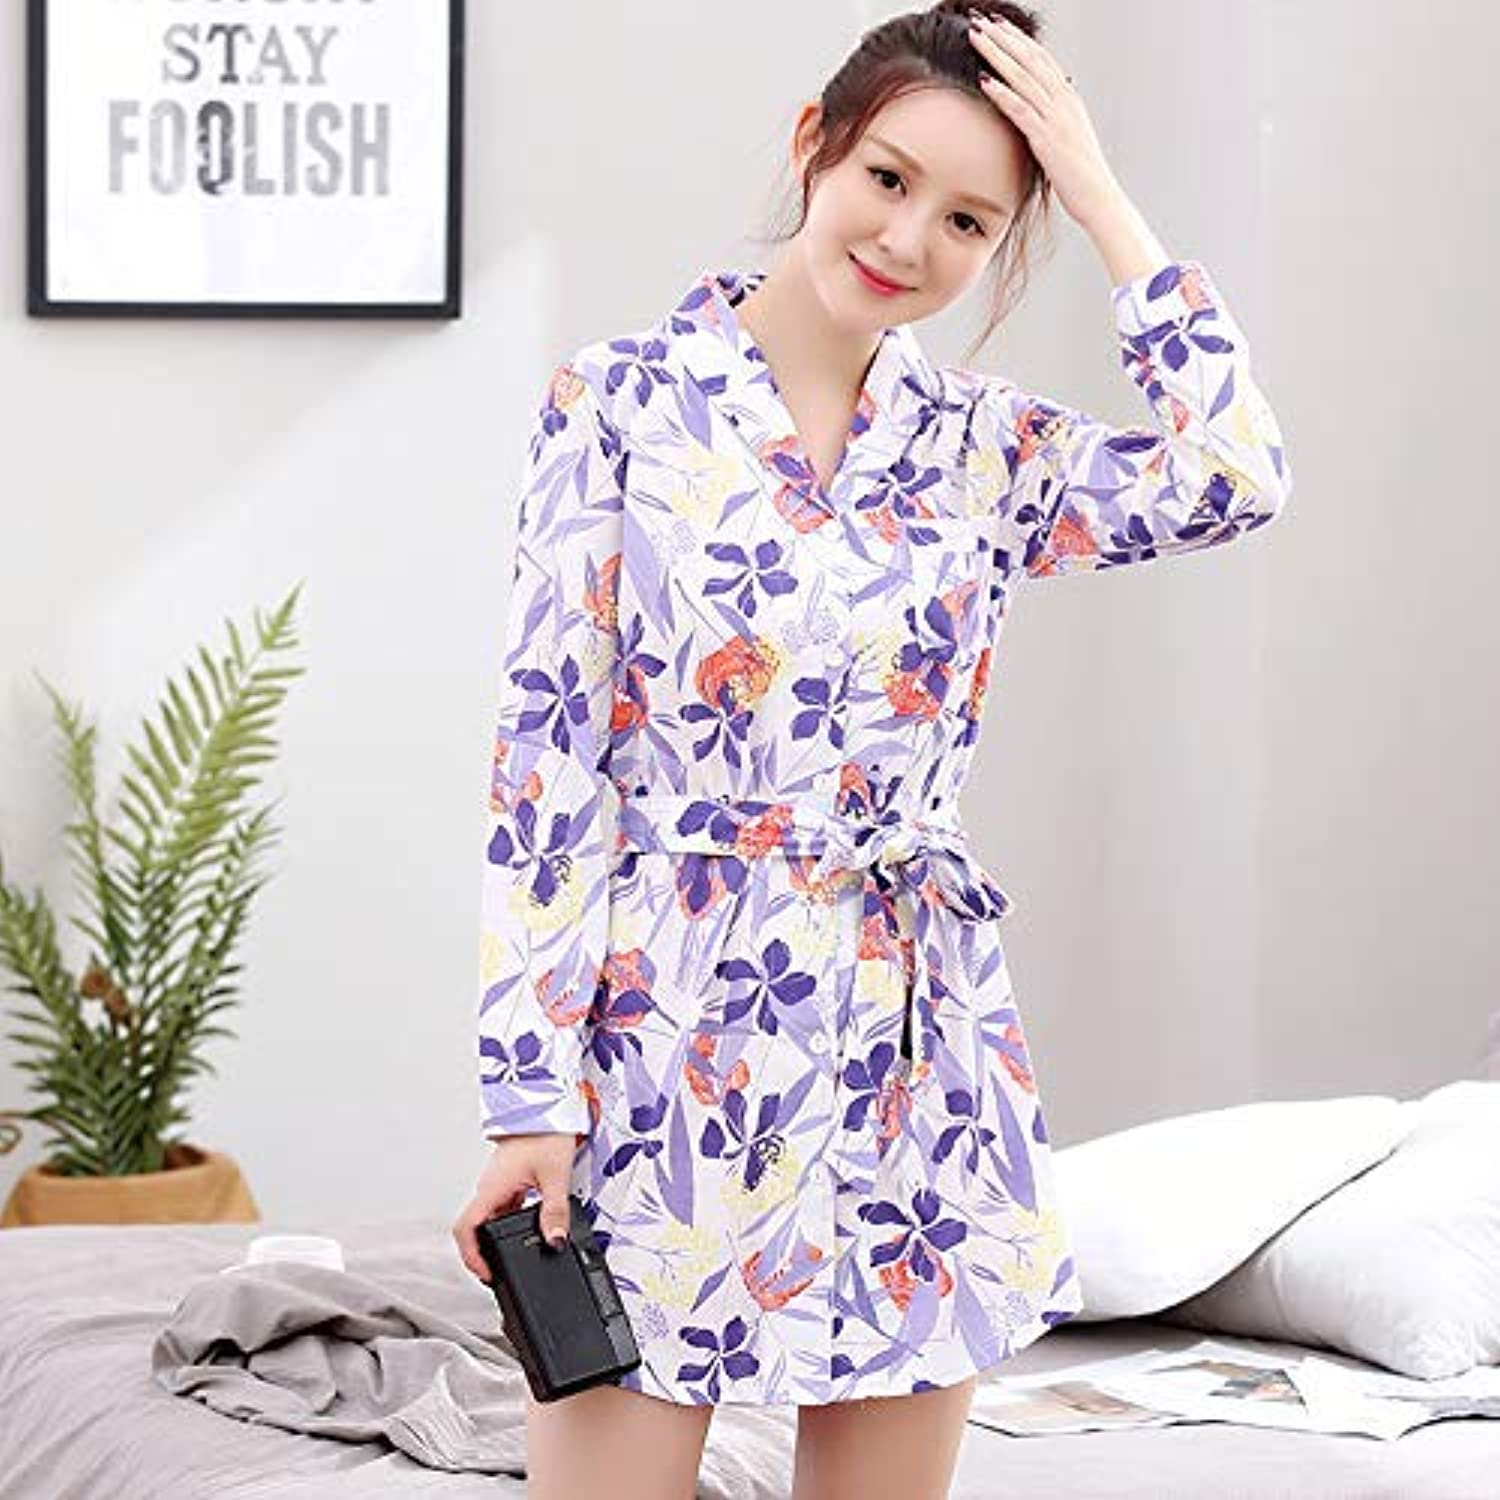 DALAI Long-Sleeved Nightdress Female Autumn Cotton Korean Version of The Skirt Home Service Spring and Autumn with Lapel Large Size Pajamas Skirt Sexy Cardigan (color   Purple, Size   L)